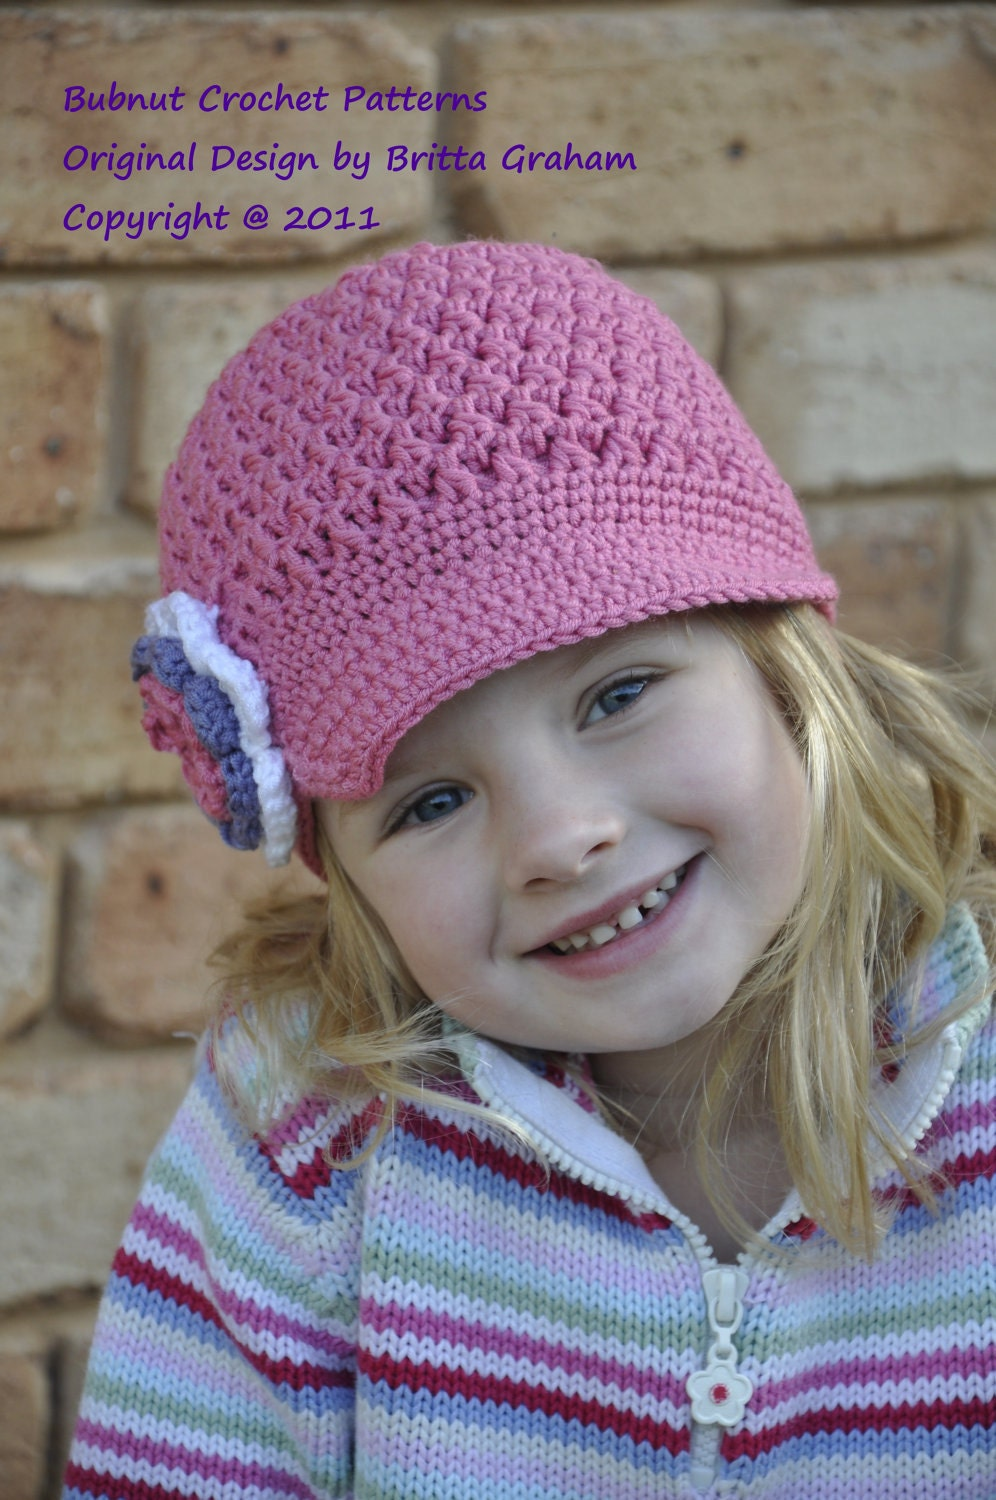 Free Crochet Pattern Toddler Newsboy Cap : Crochet Hat Pattern Textured Newsboy Pattern No.407 TEN